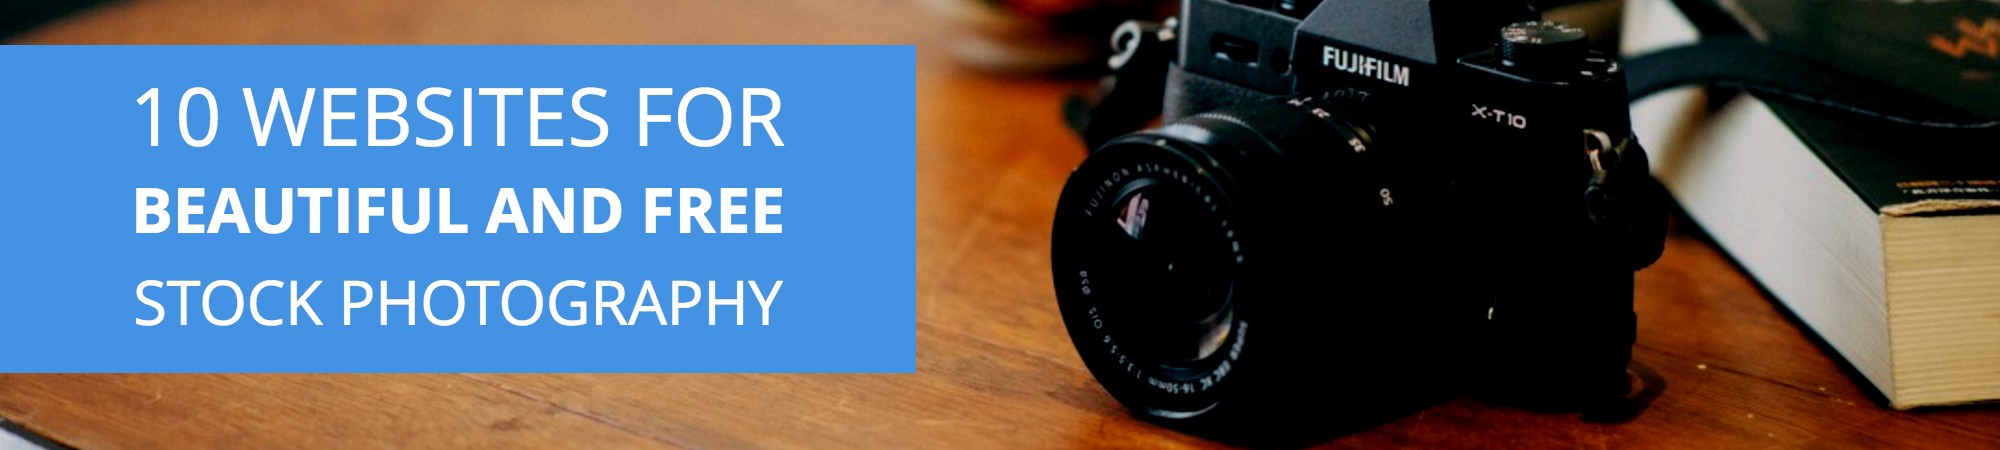 10 Websites for Beautiful and Free Stock Photography.jpg